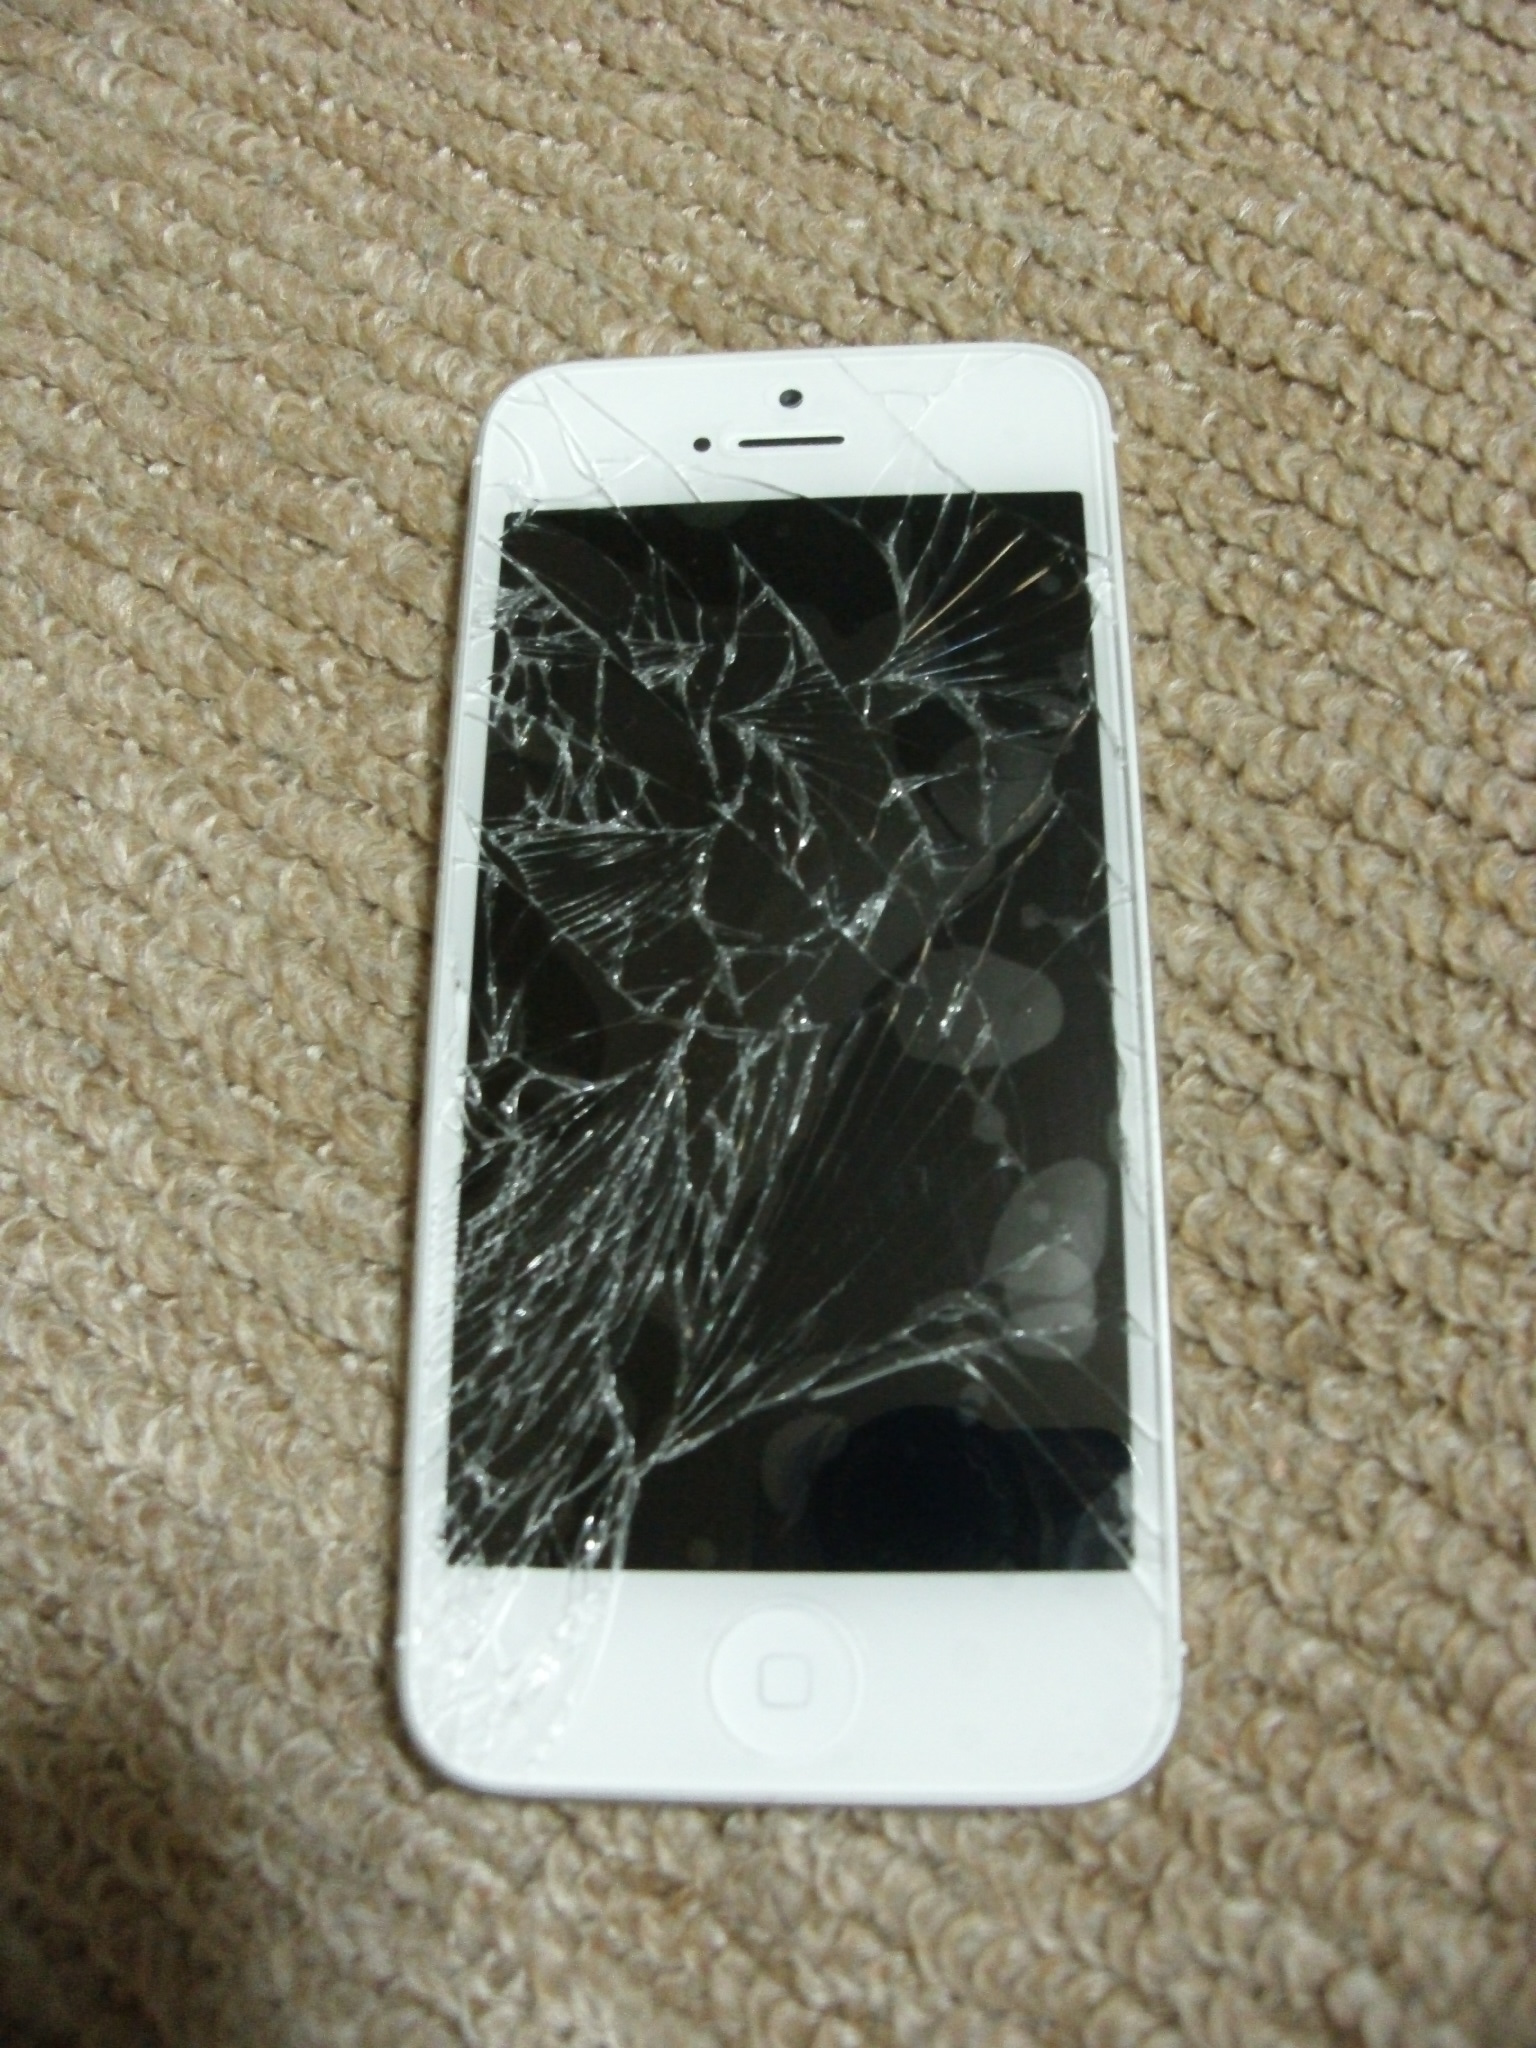 how to use an iphone screen when broken